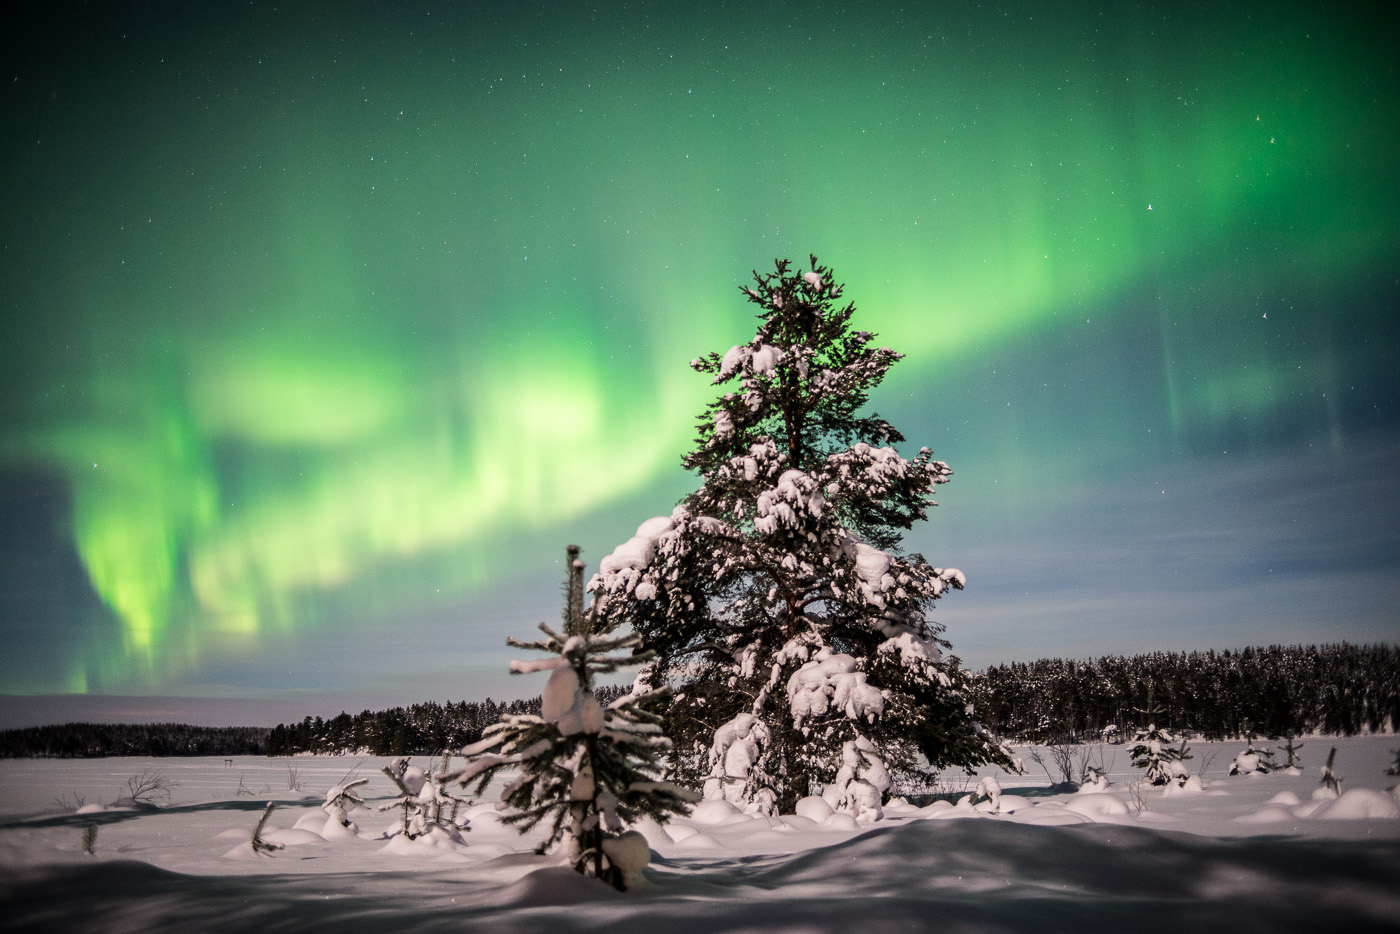 Aurora over Lapland